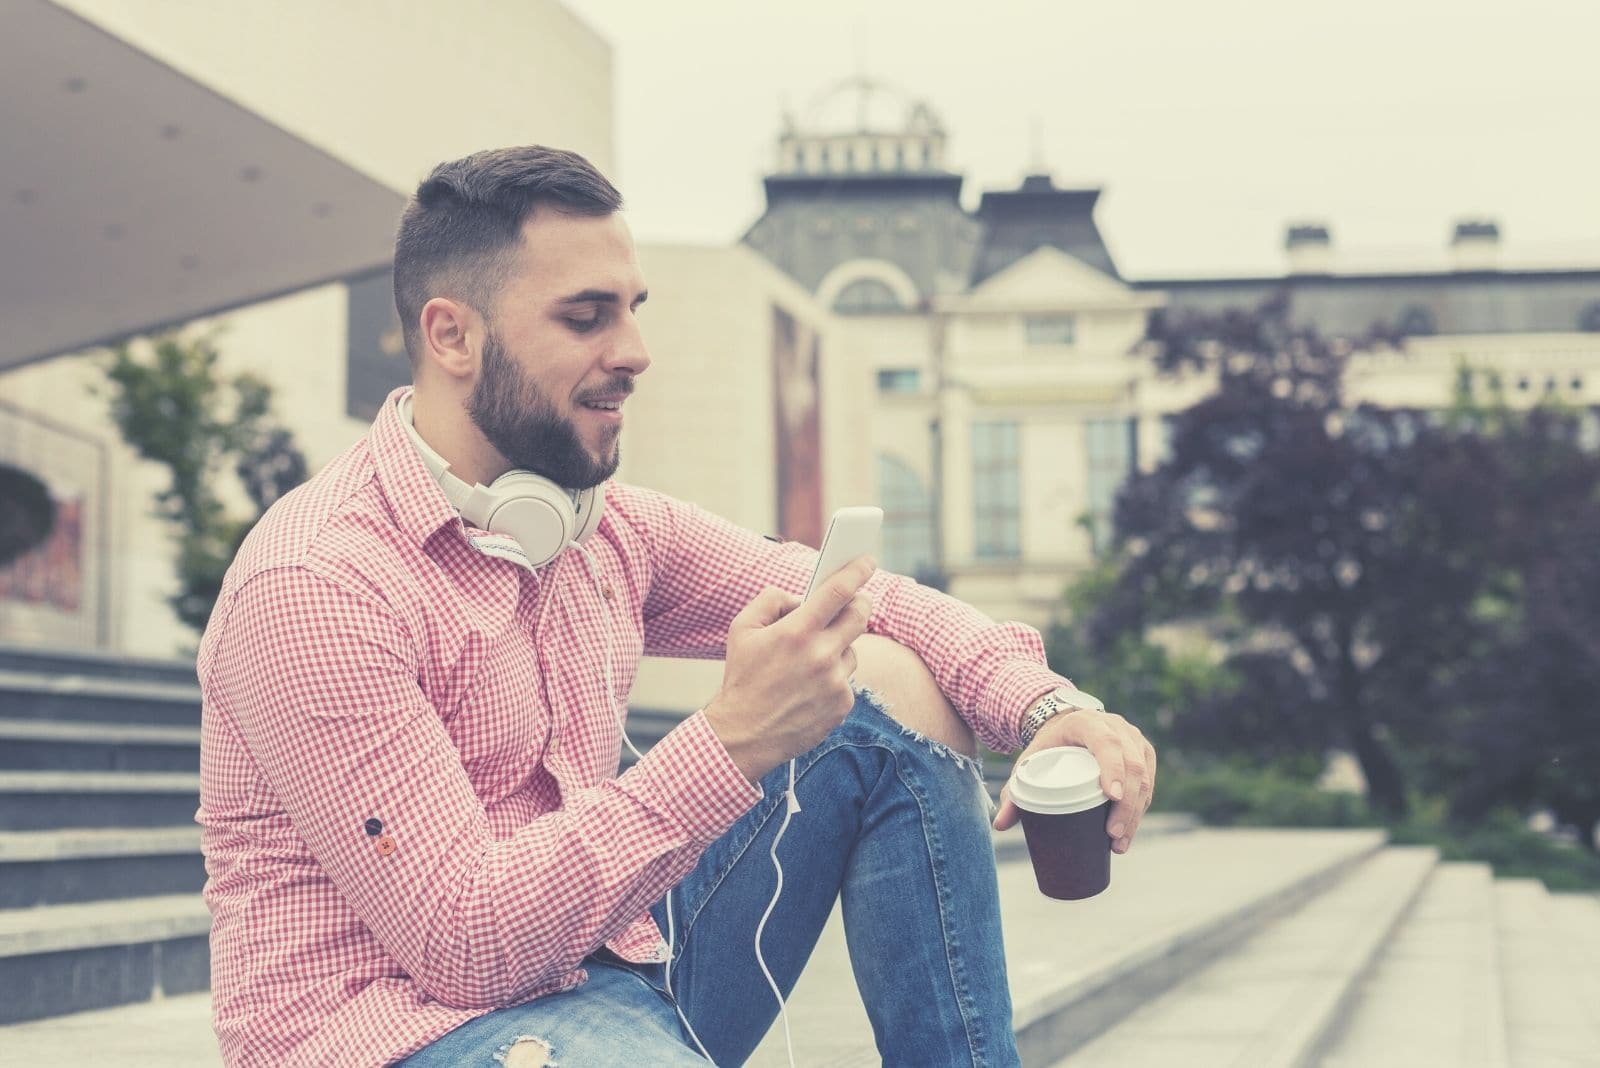 man sitting in public stairs of the plaza drinking coffee and texting with a headphone around his neck